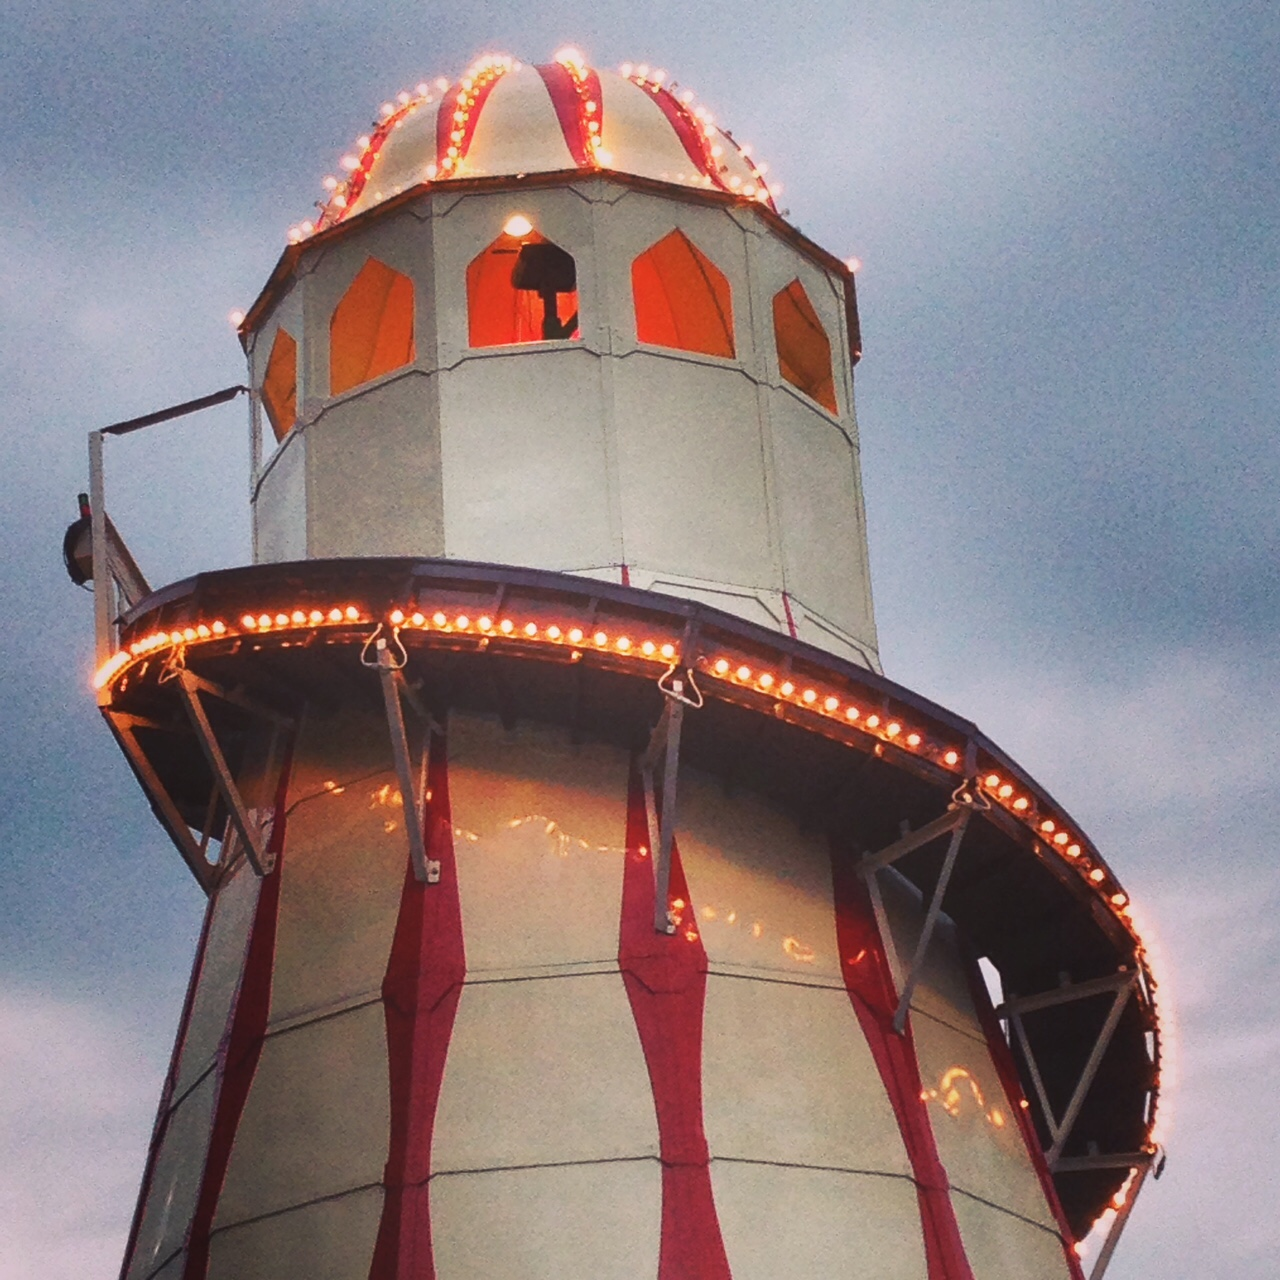 Twinkly Helter Skelter fun on Sunday night